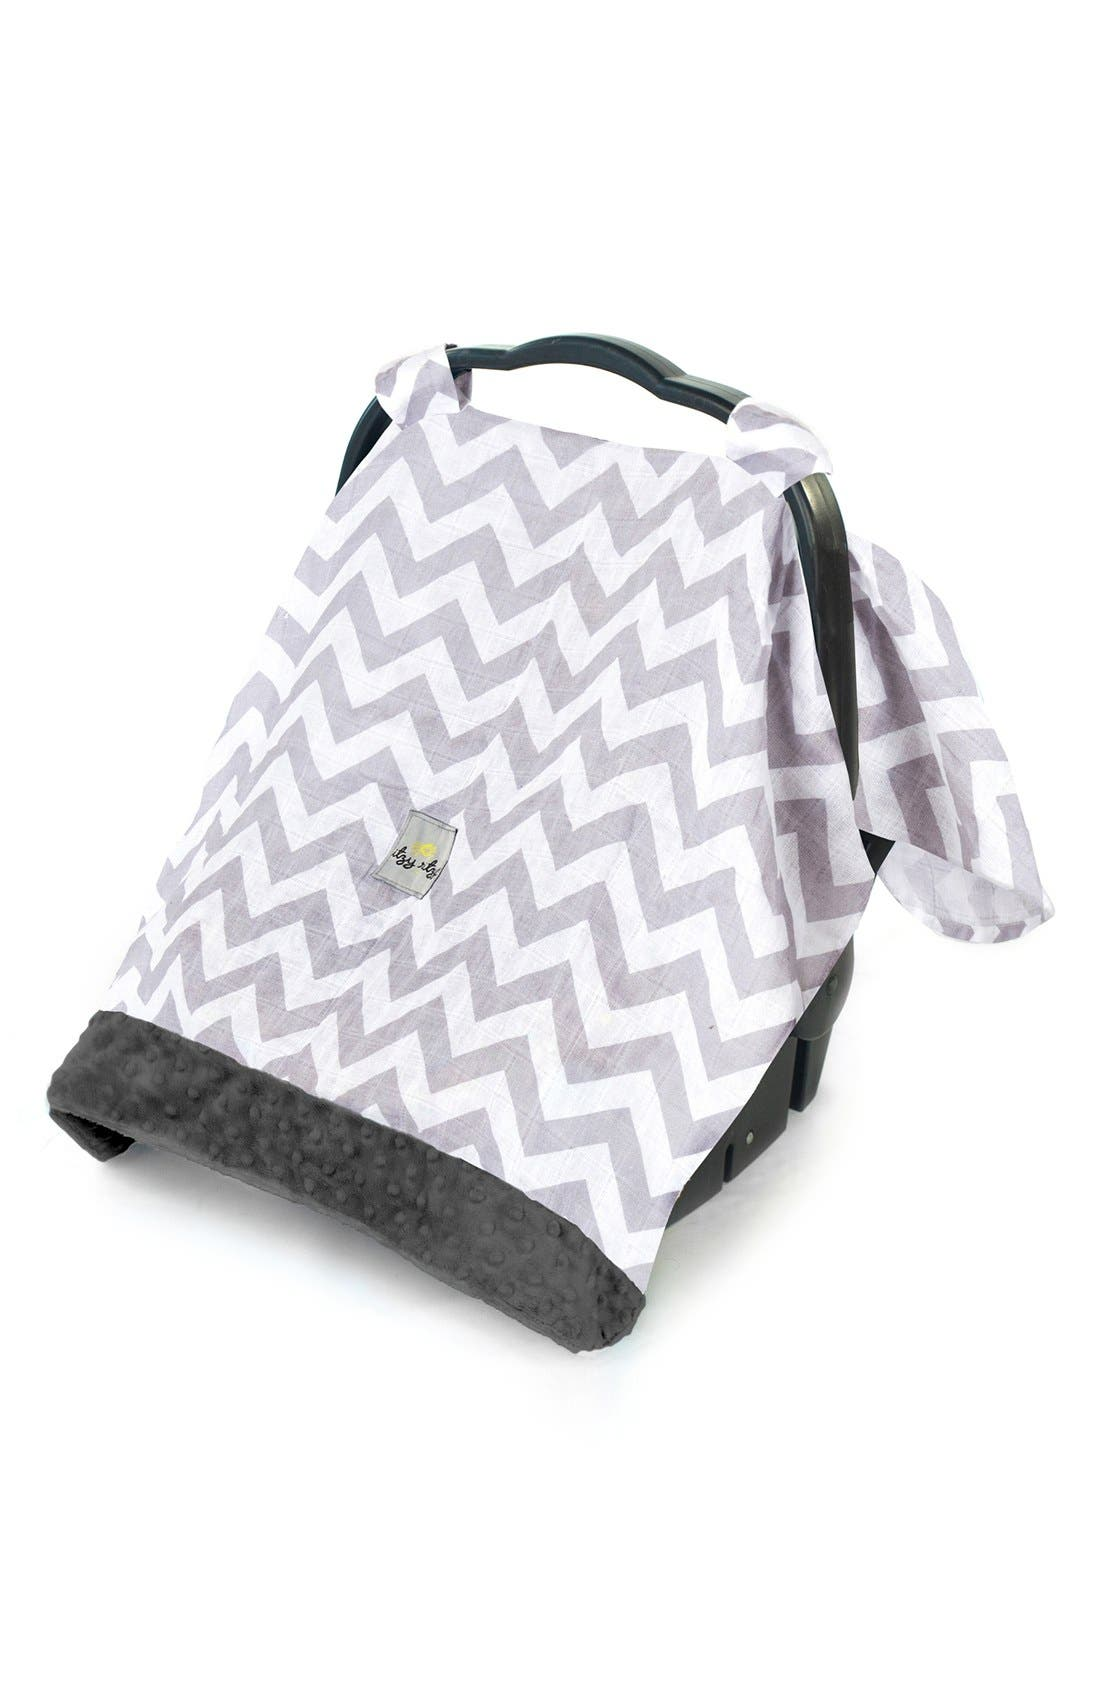 'Cozy Happens<sup>™</sup>' Muslin Canopy & Tummy Time Mat,                             Main thumbnail 1, color,                             Grey Chevron